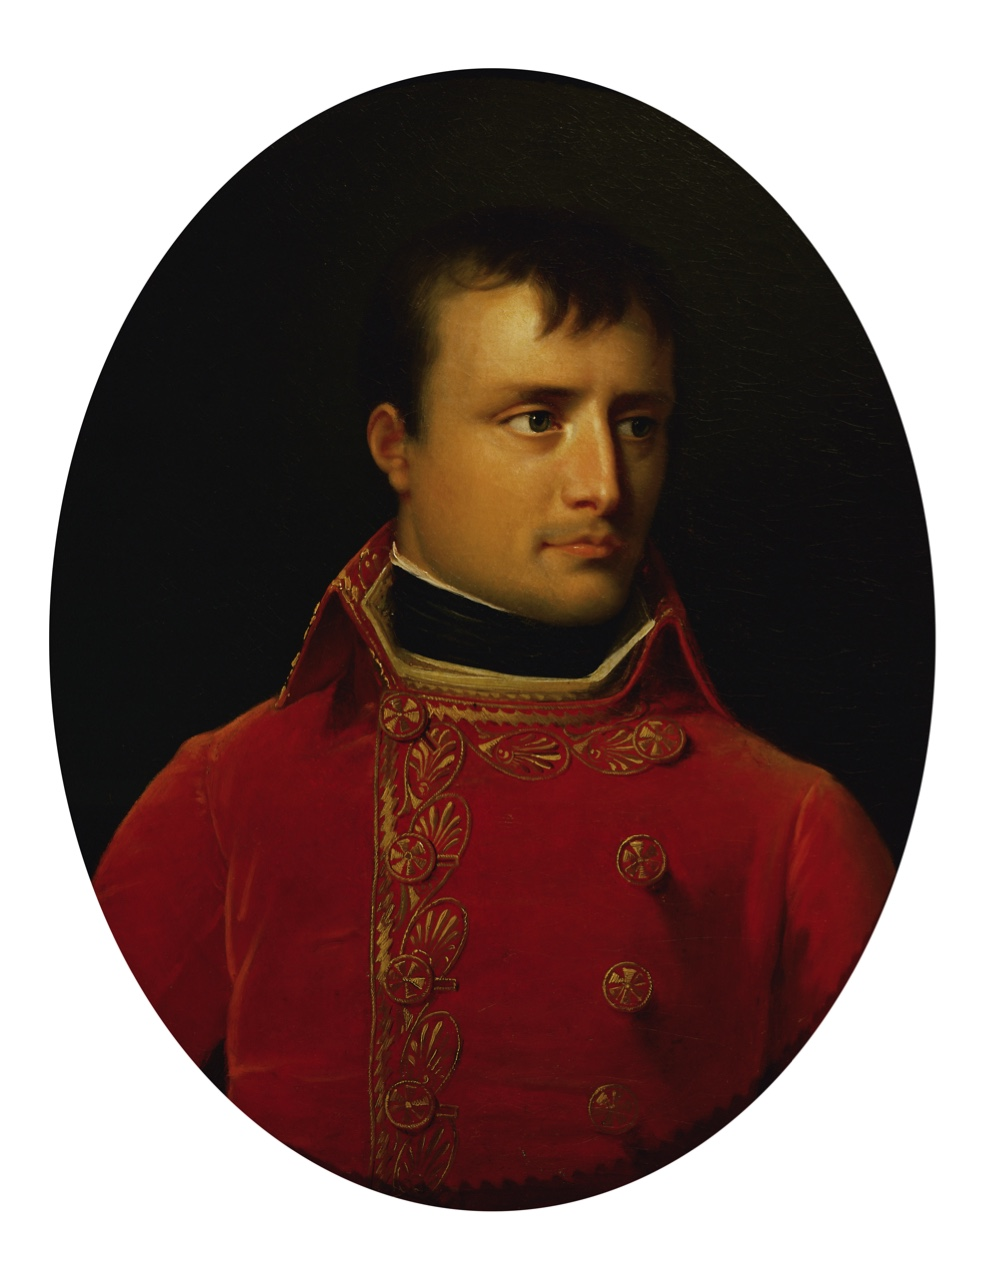 Napoleon Bonaparte (1769-1821) as First Consul of France. By Anne Louis Girodet de Roussy-Trioson. Schloss Arenenberg, Switzerland. (Photo by Imagno/Getty Images)